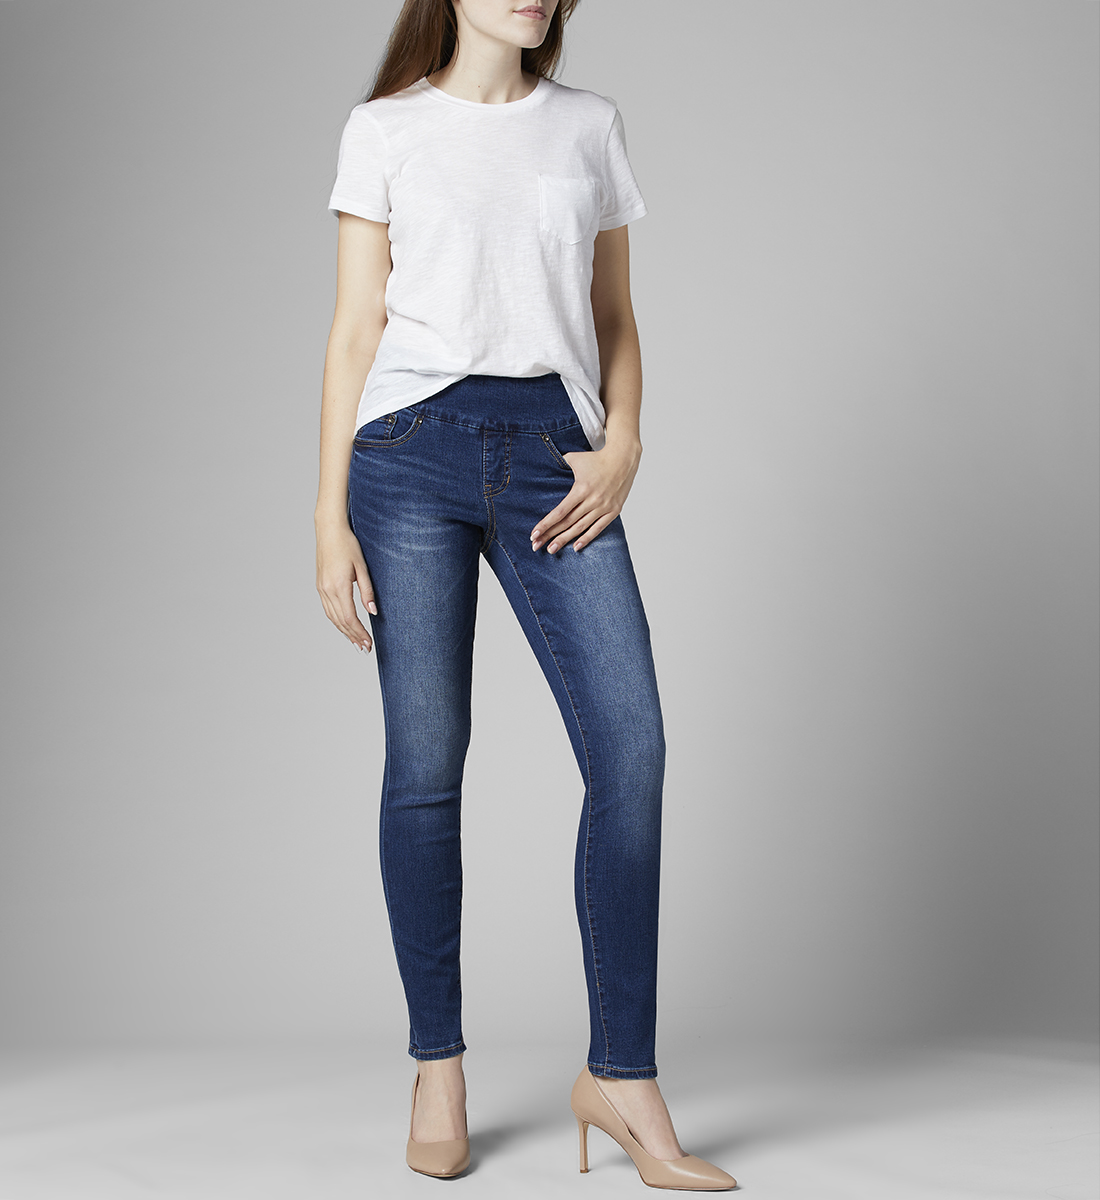 Nora Mid Rise Skinny Pull-On Jeans, , hi-res